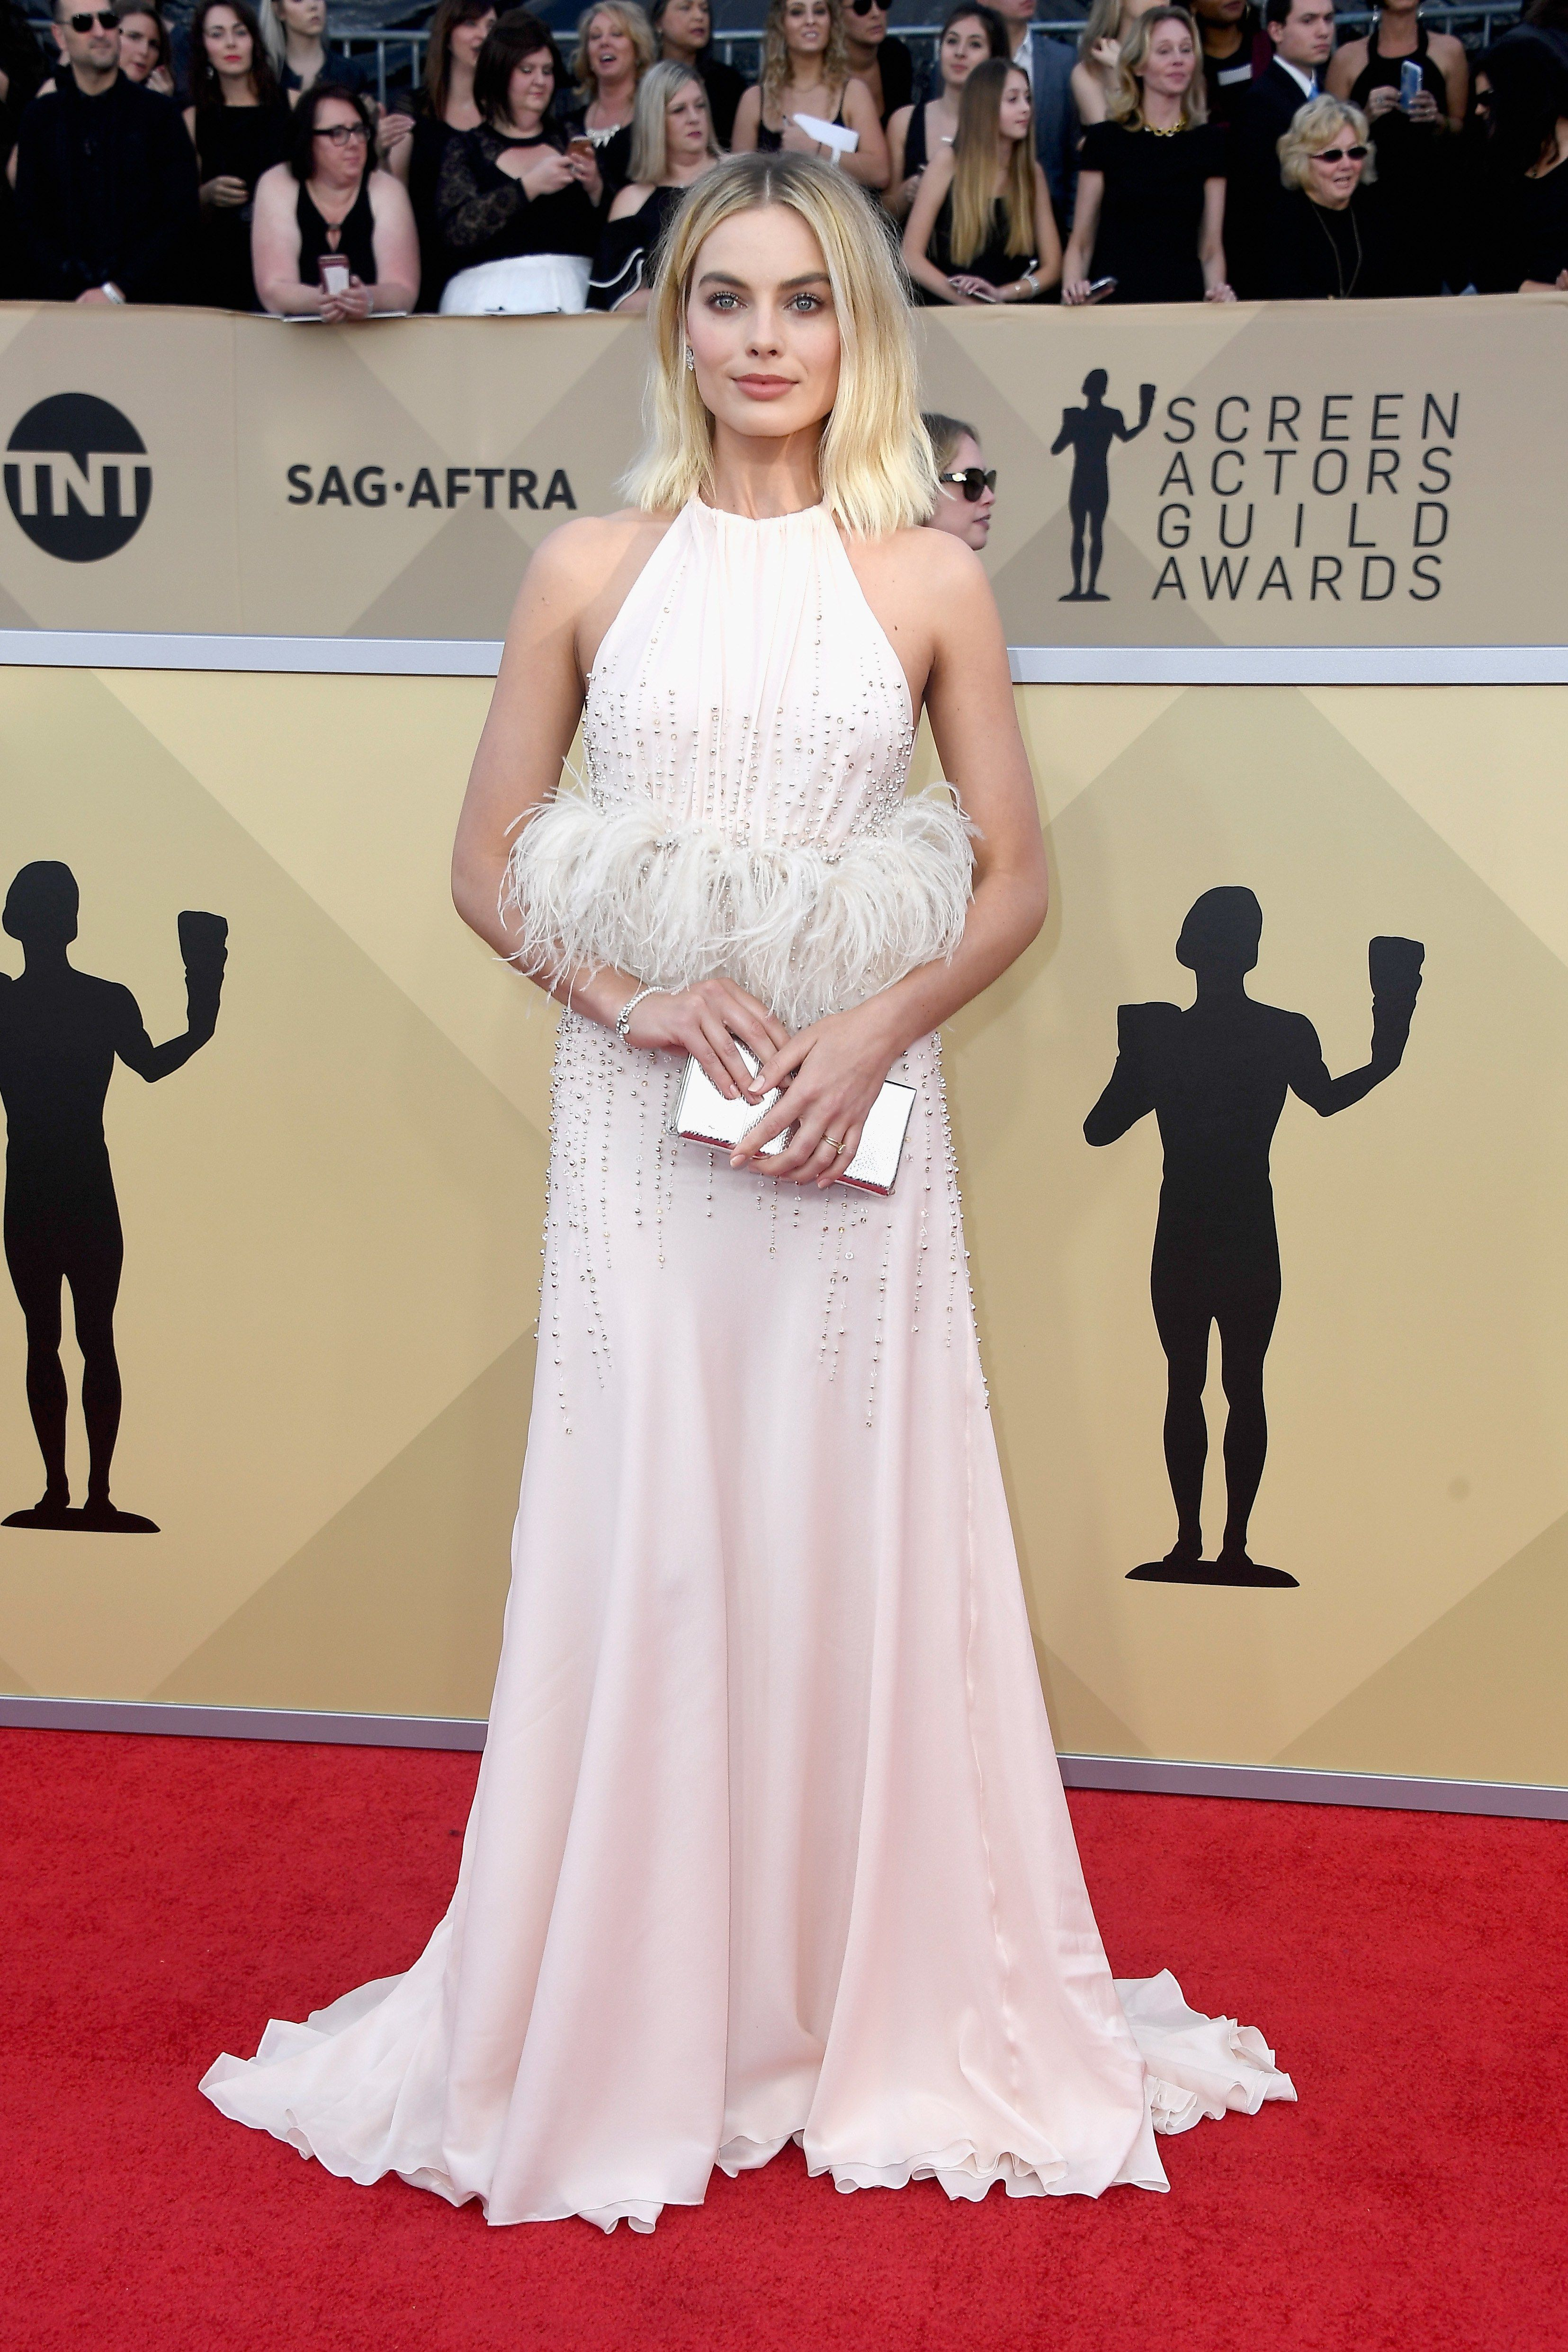 The Millennial Pink Trend Lives Another Day Thanks To Sag Awards